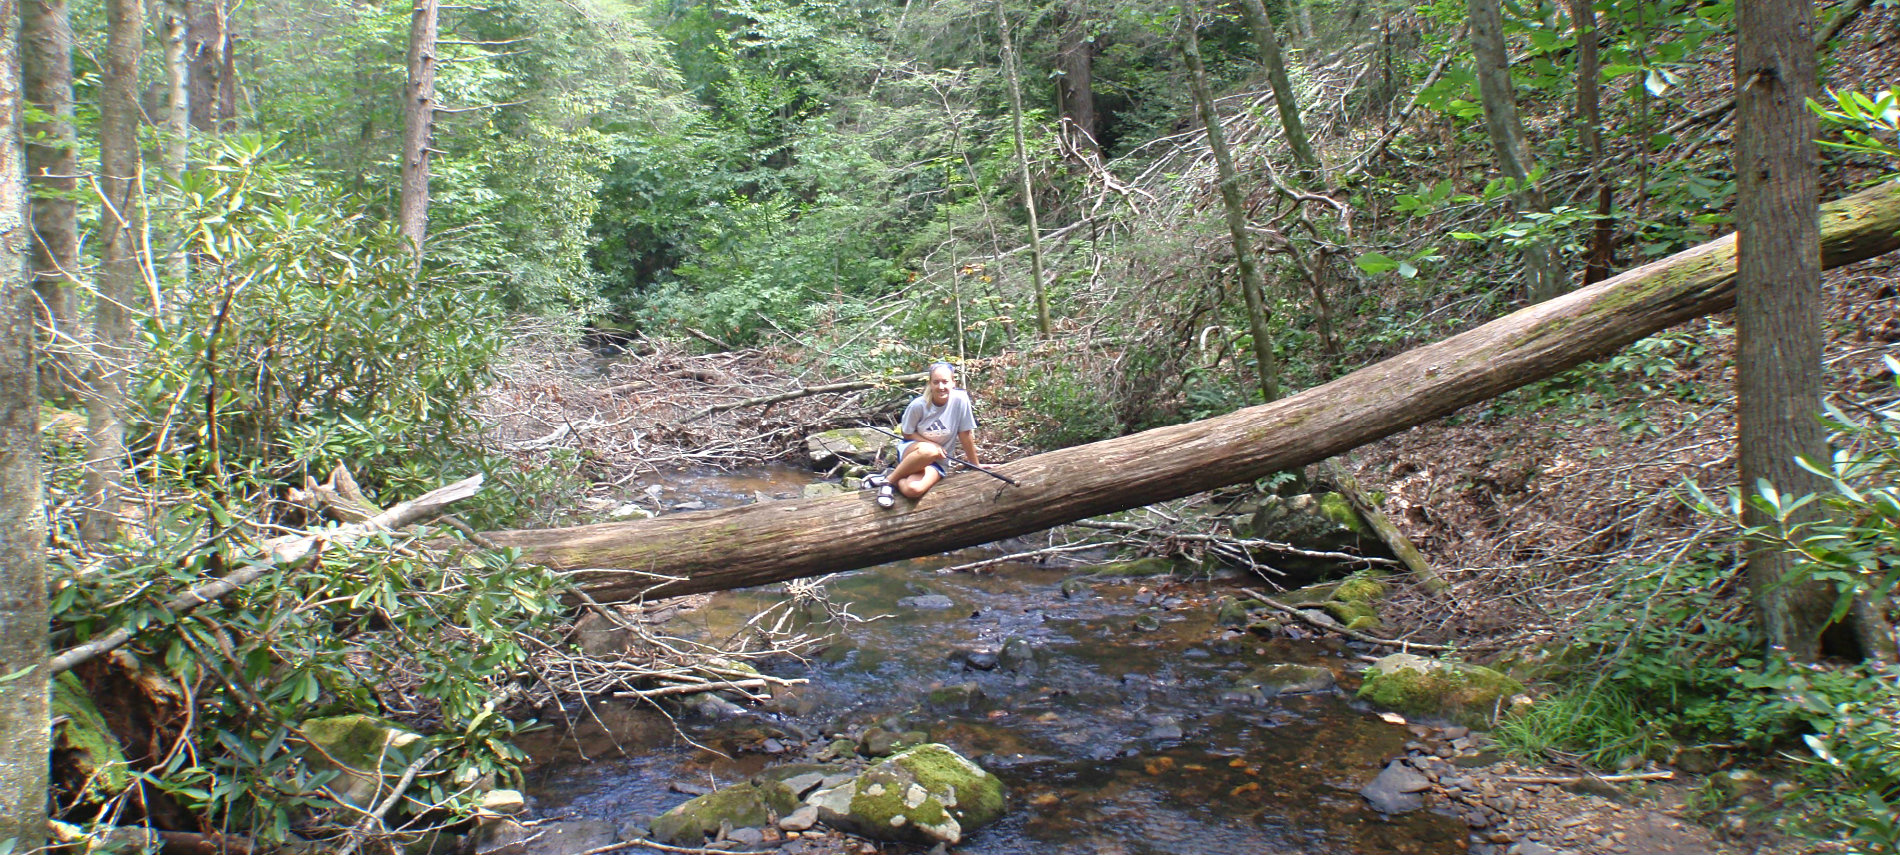 Girl sitting on a large tree that fell across the river. Trees are surrounding both sides of the river.